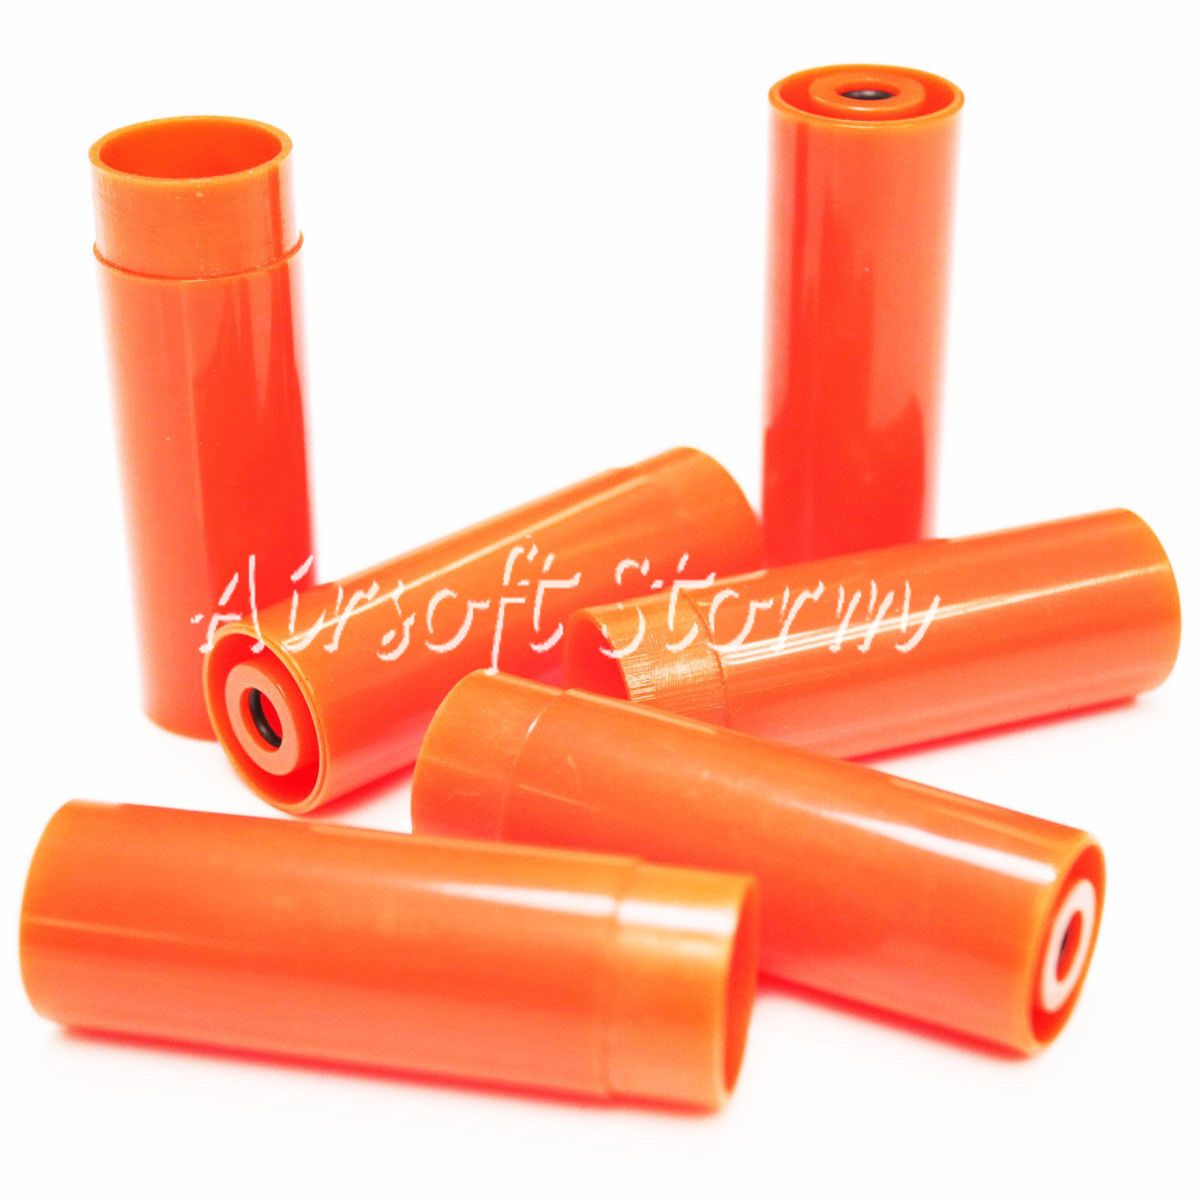 Shooting Gear PPS 6pcs Plastic Shell Case for M870 Pump Action Shotgun Orange